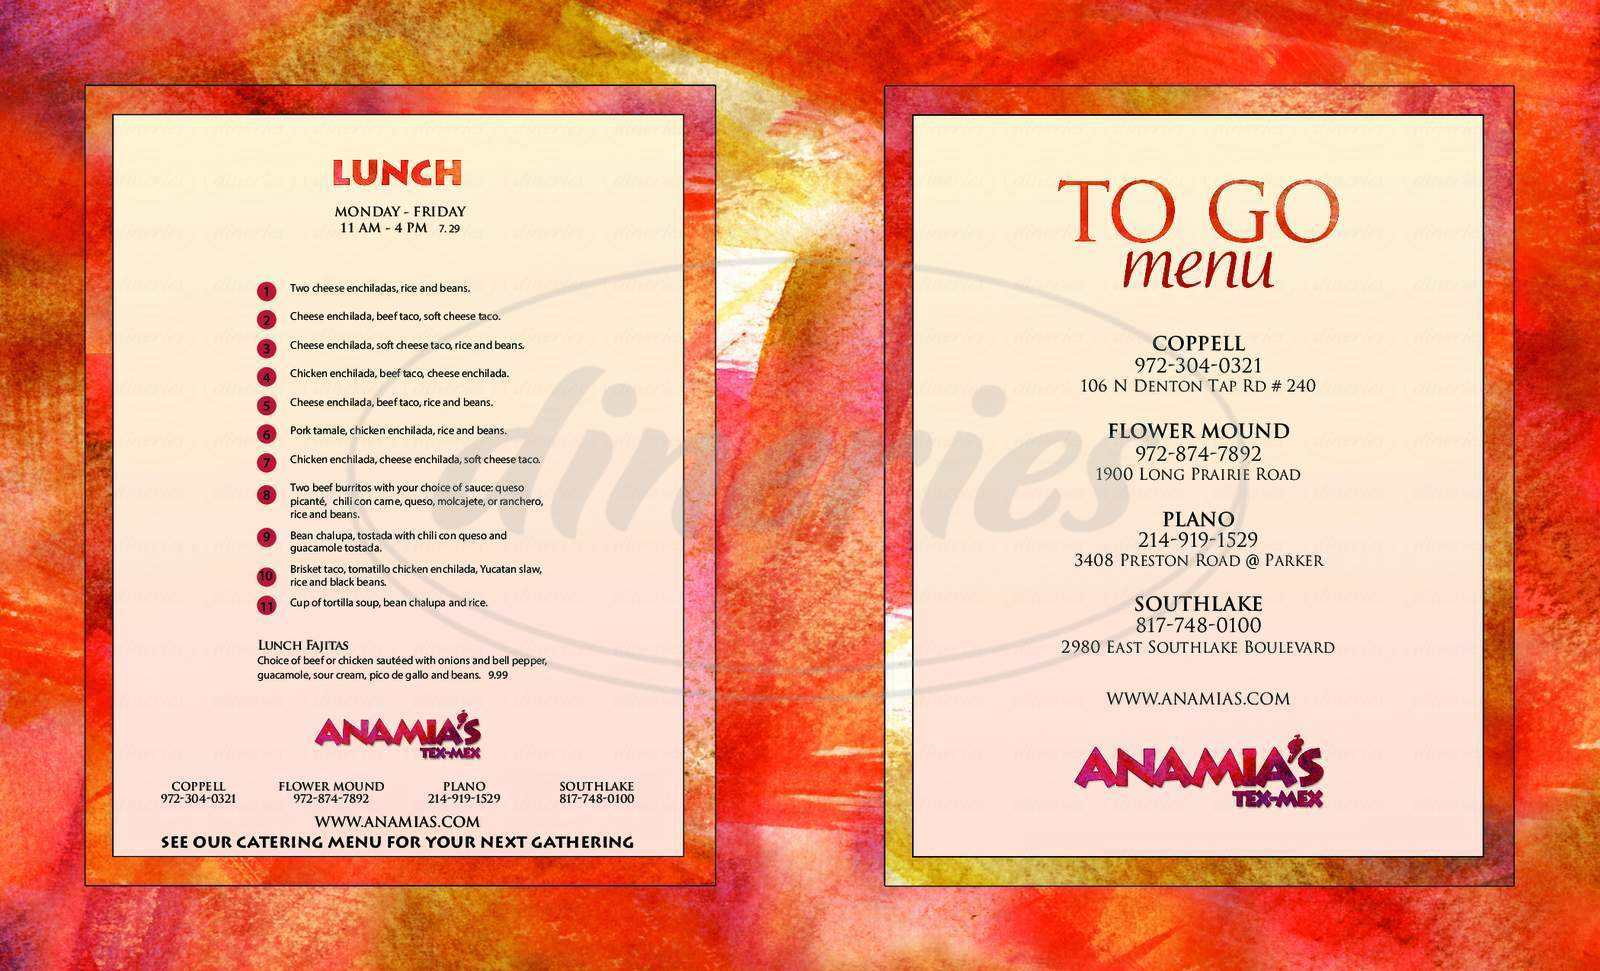 menu for Anamia's Tex Mex Restaurant